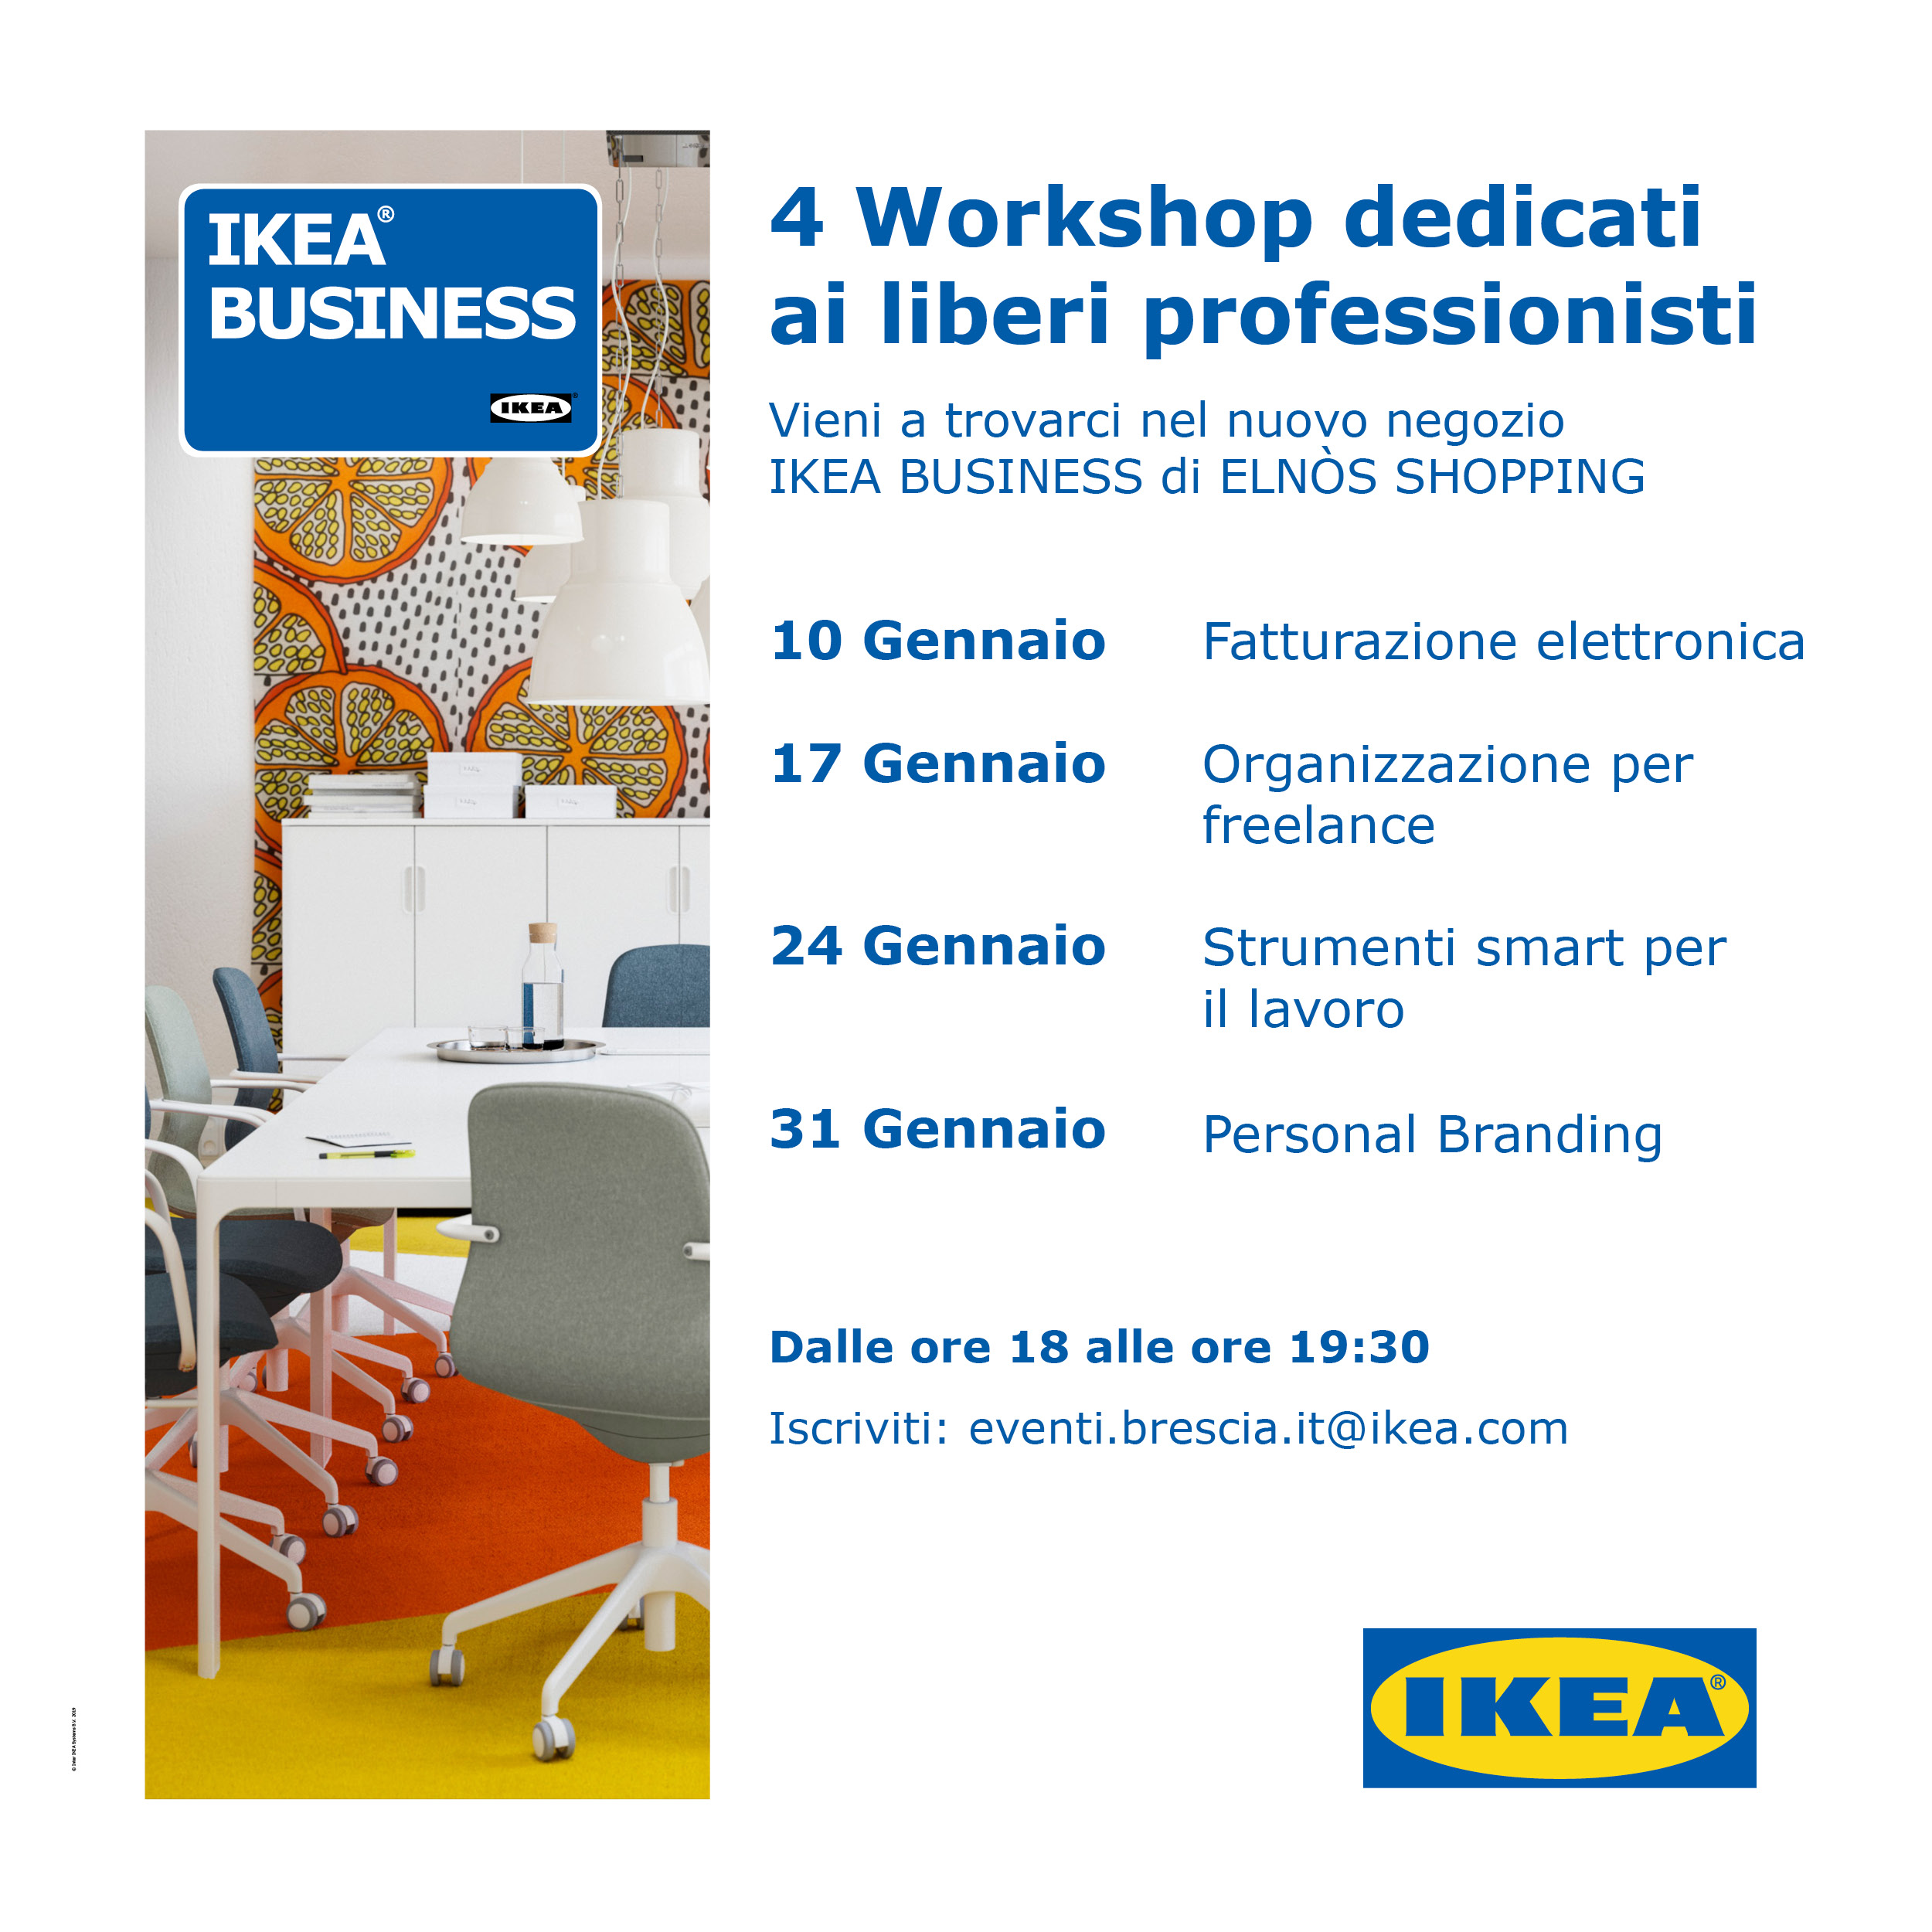 Ikea Business 4 Workshop dedicati ai liberi professionisti